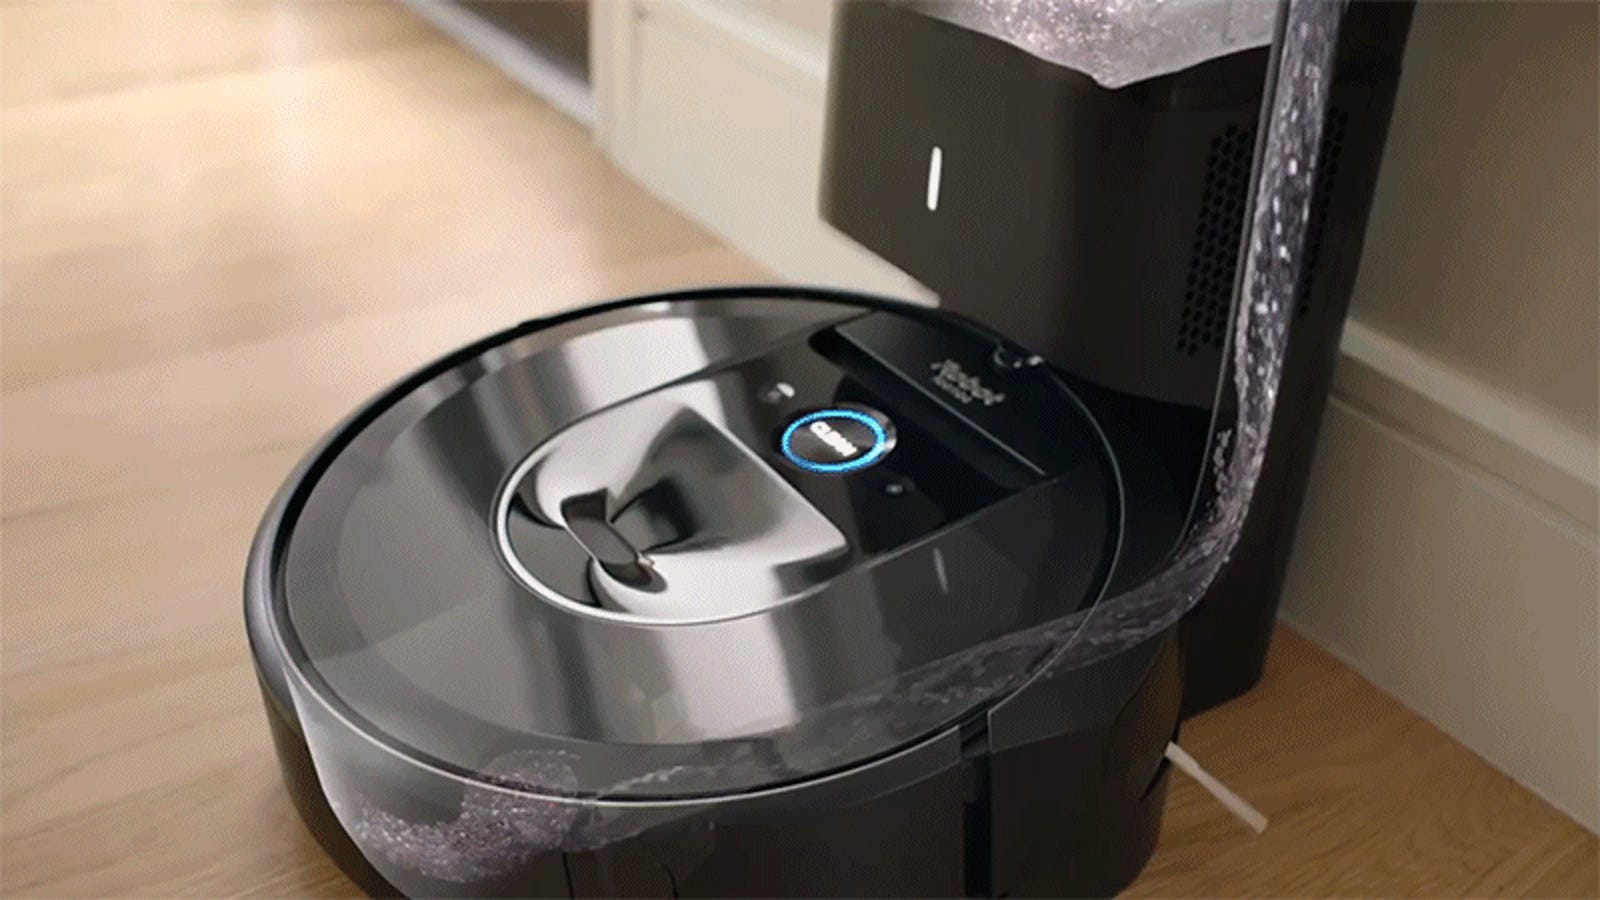 iRobot Says New i7+ Roomba Vacuum Actually Empties Itself